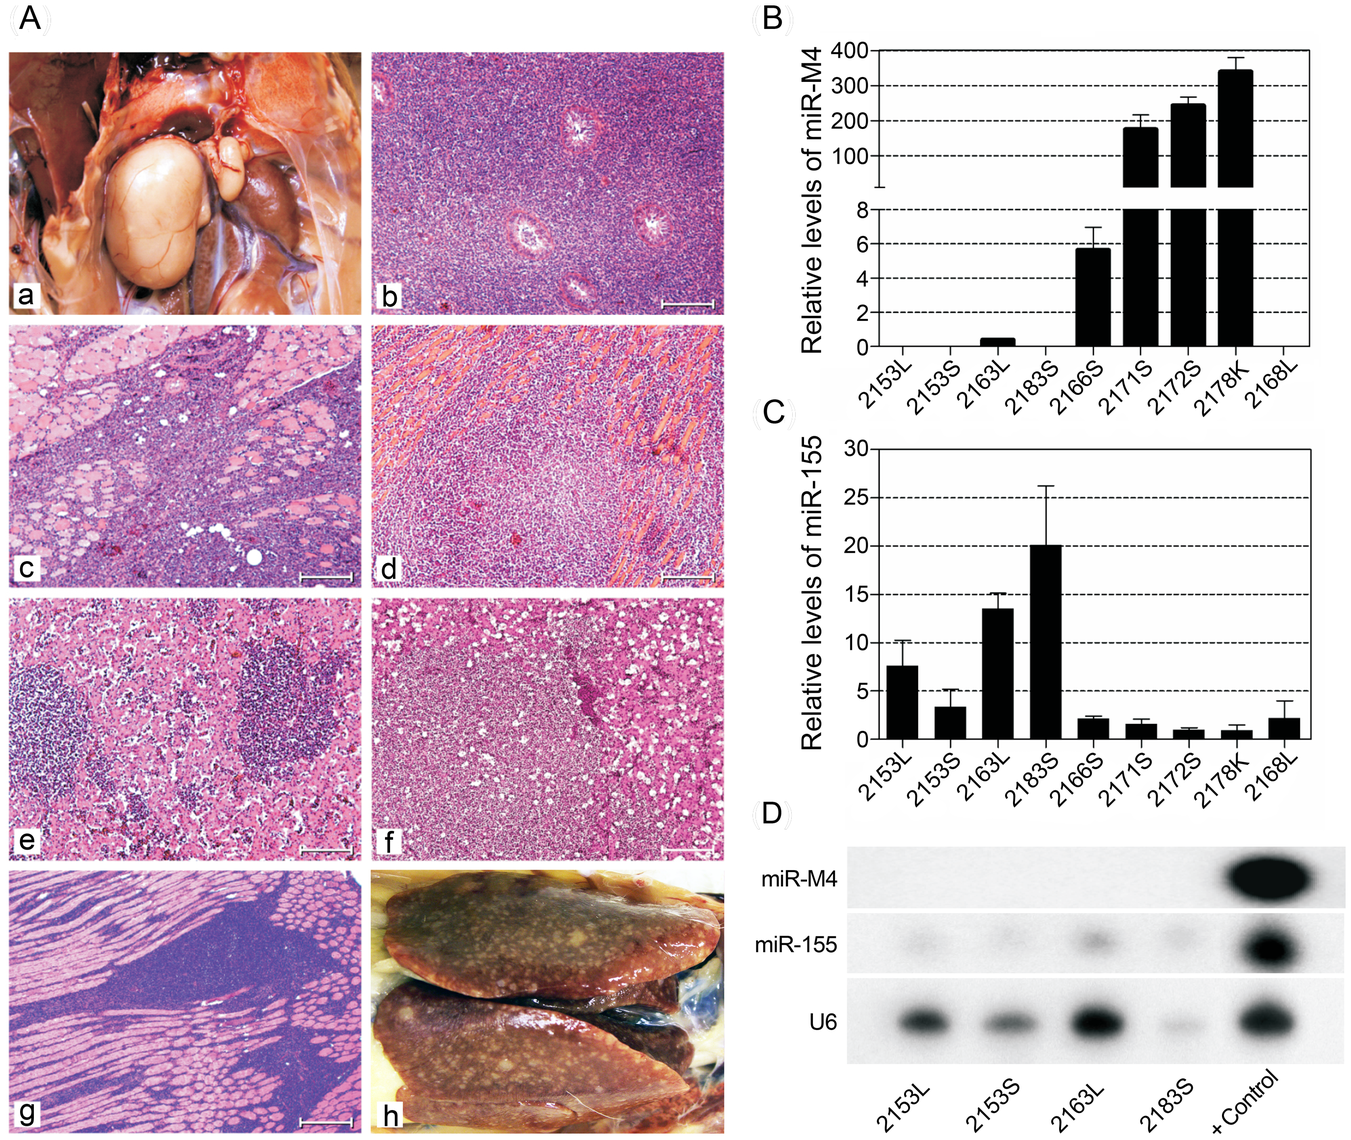 Pathological lesions and expression of miRNAs in tumors induced by MDV.